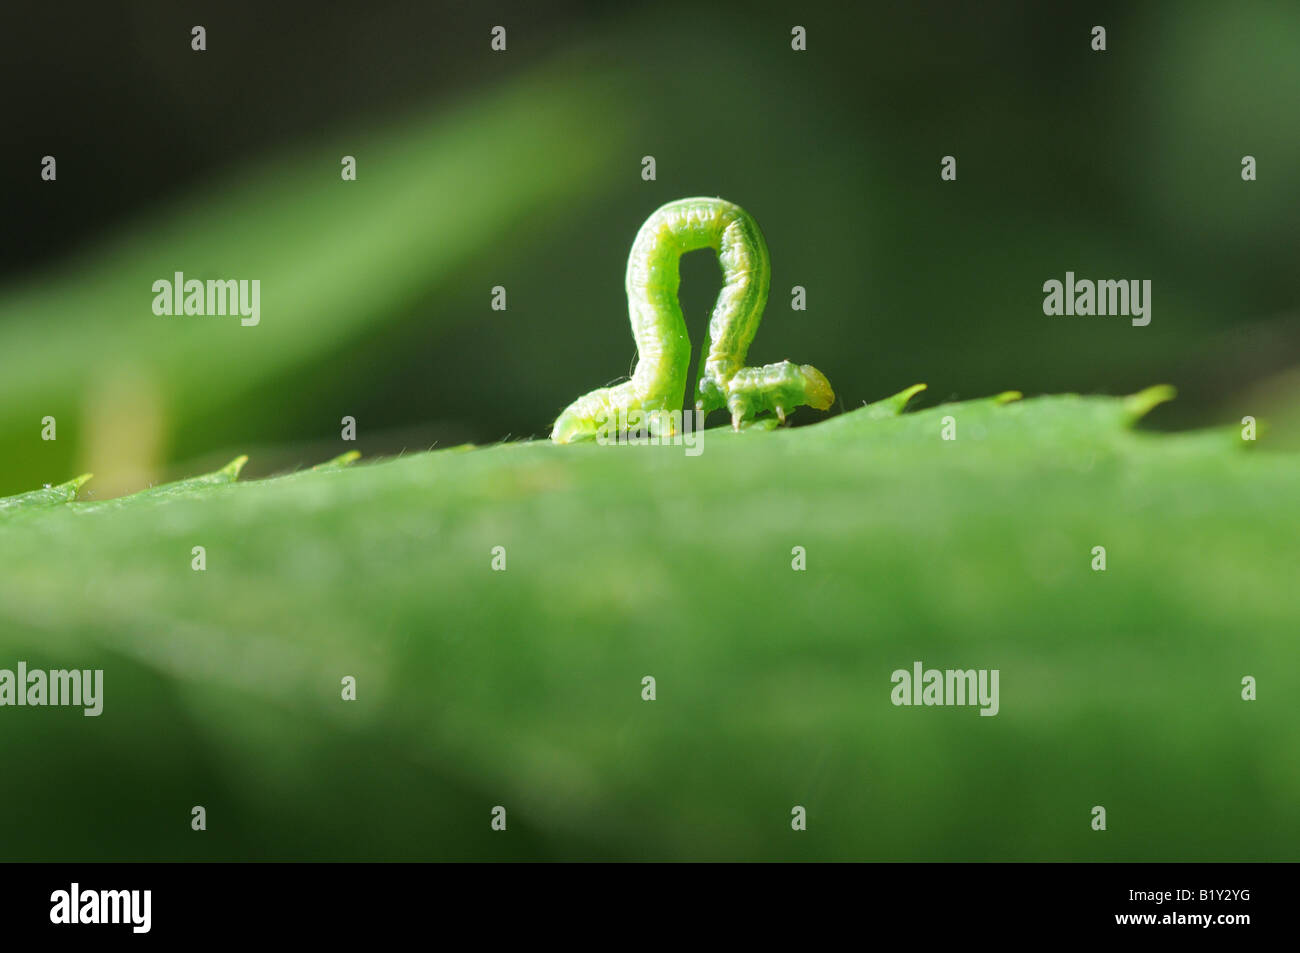 """An inchworm bent in mid path, its body forming an """"omega"""" shape, as it crawls along the jagged edge of a very green - Stock Image"""